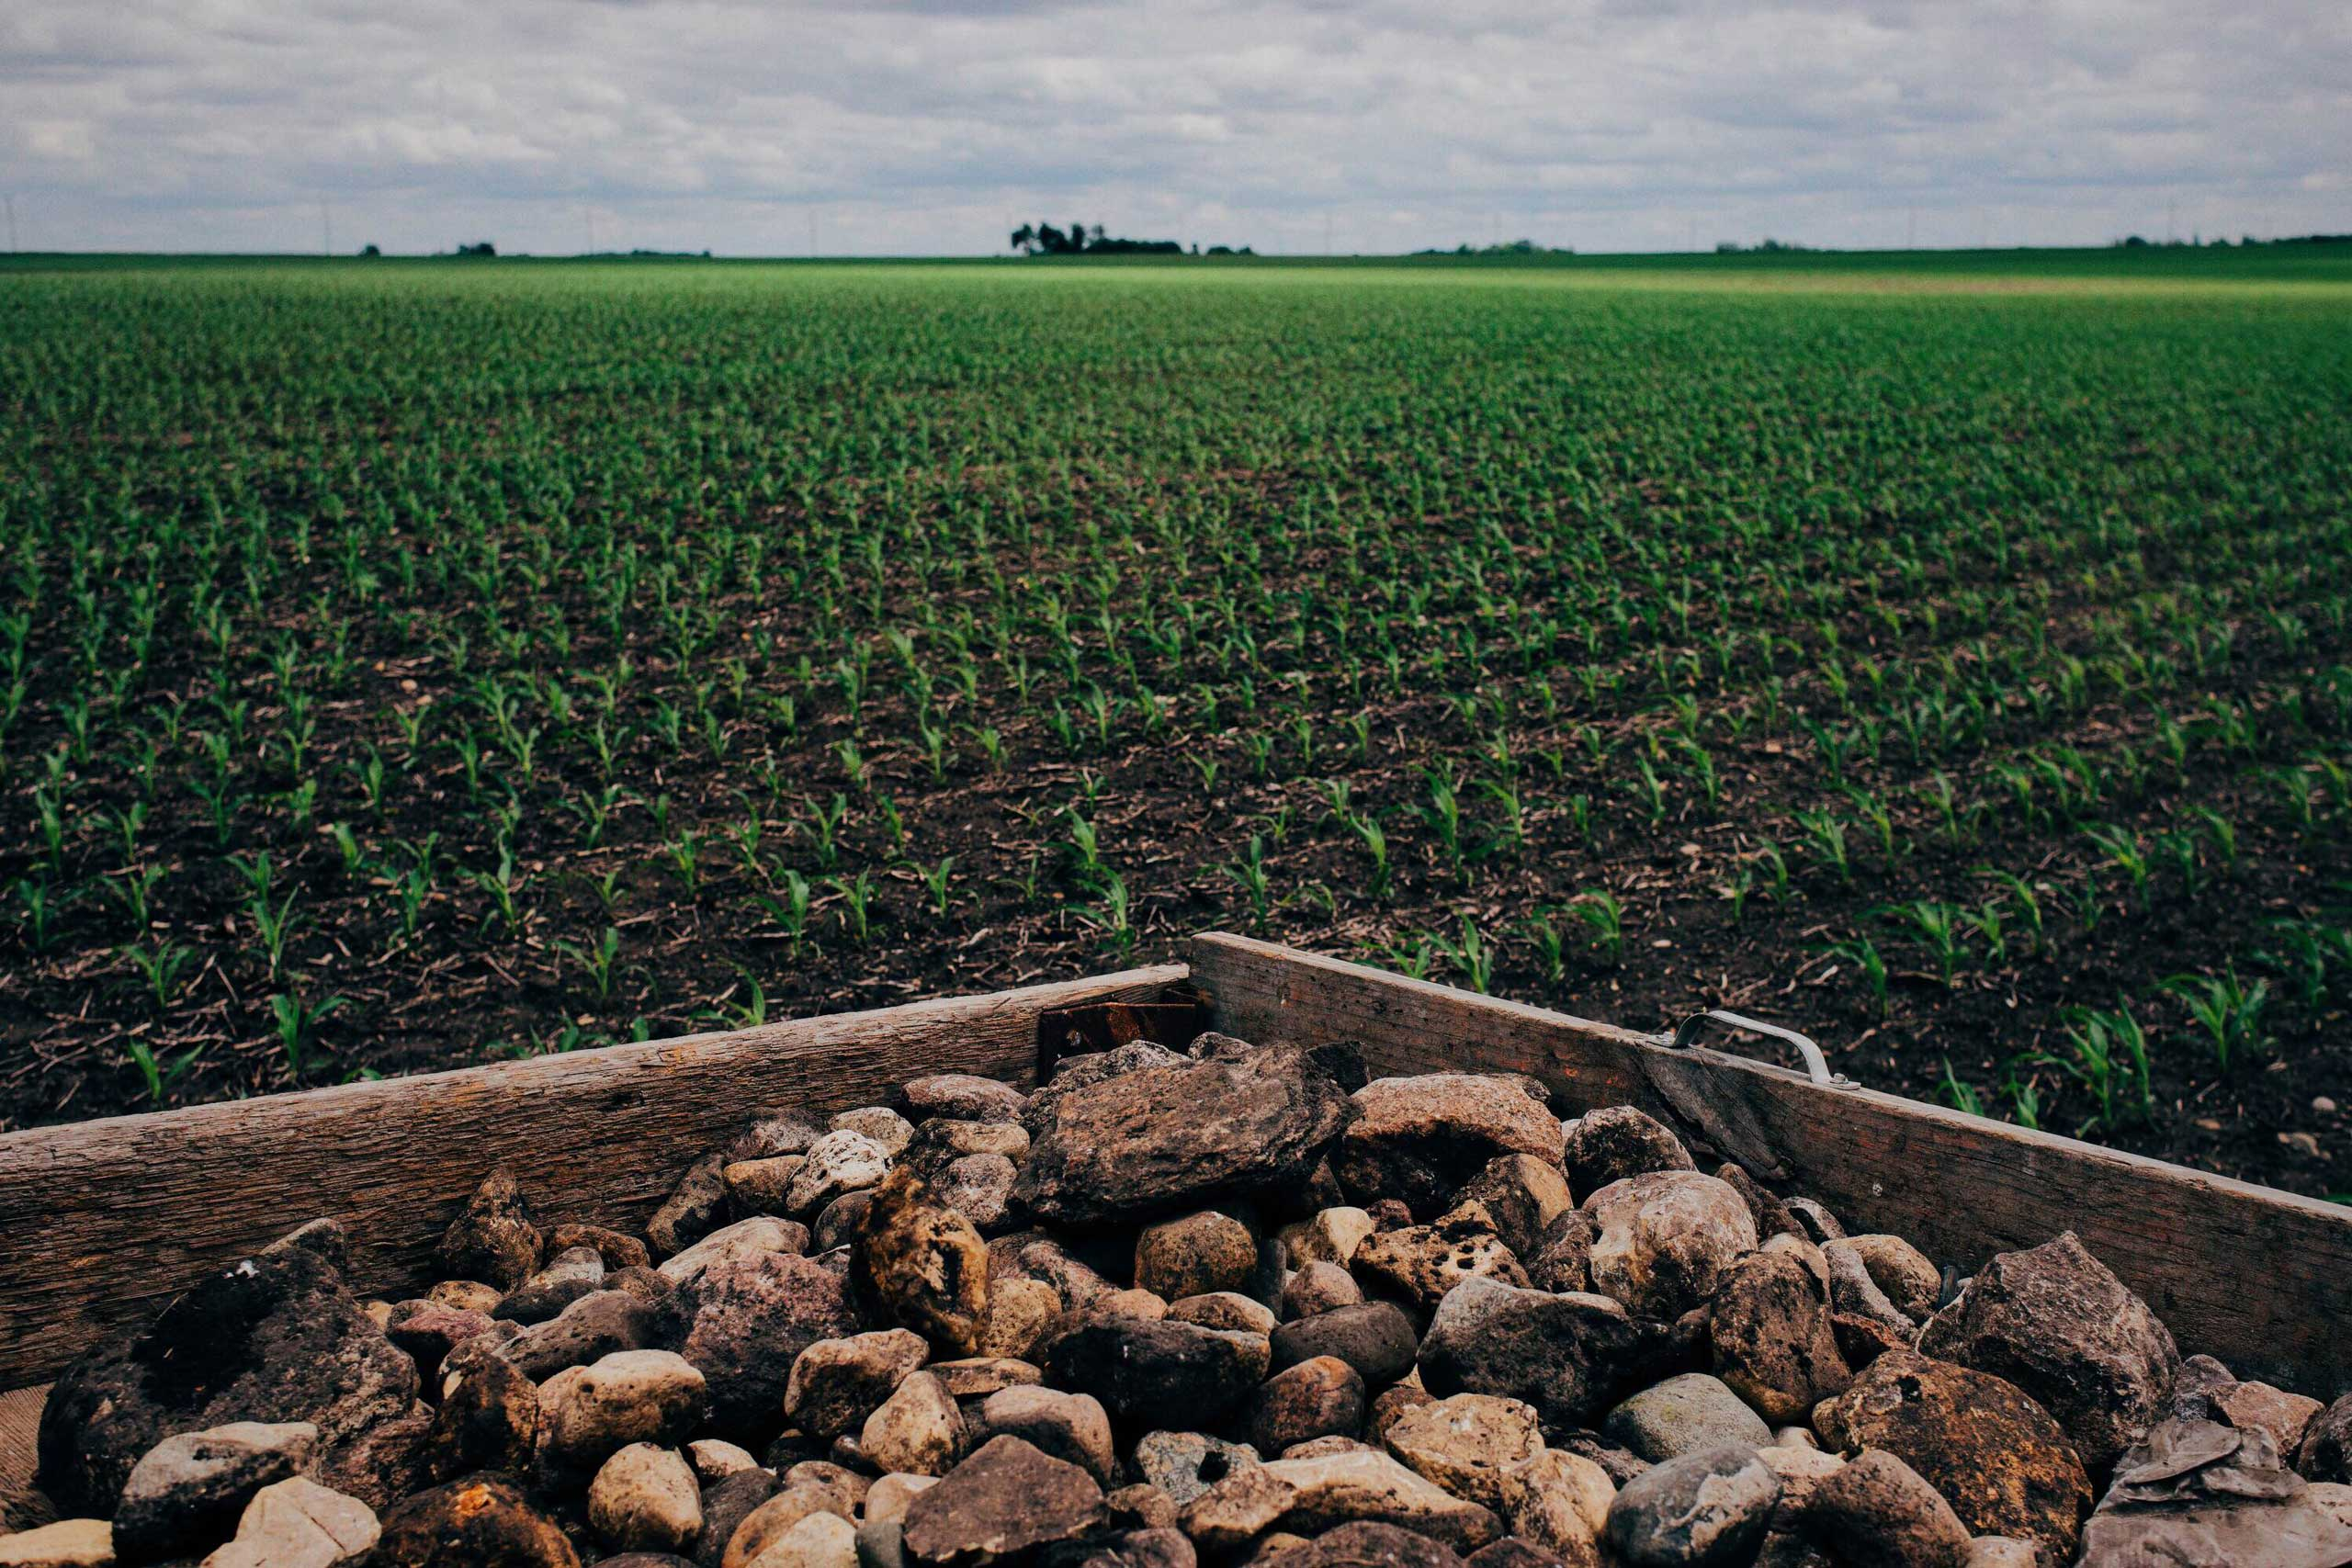 Corn grows behind a trailer full of rocks in Springfield Township, Minnesota on June 1, 2016. The crop was planted less than a month ago, but in just one month the corn grows two meters high.